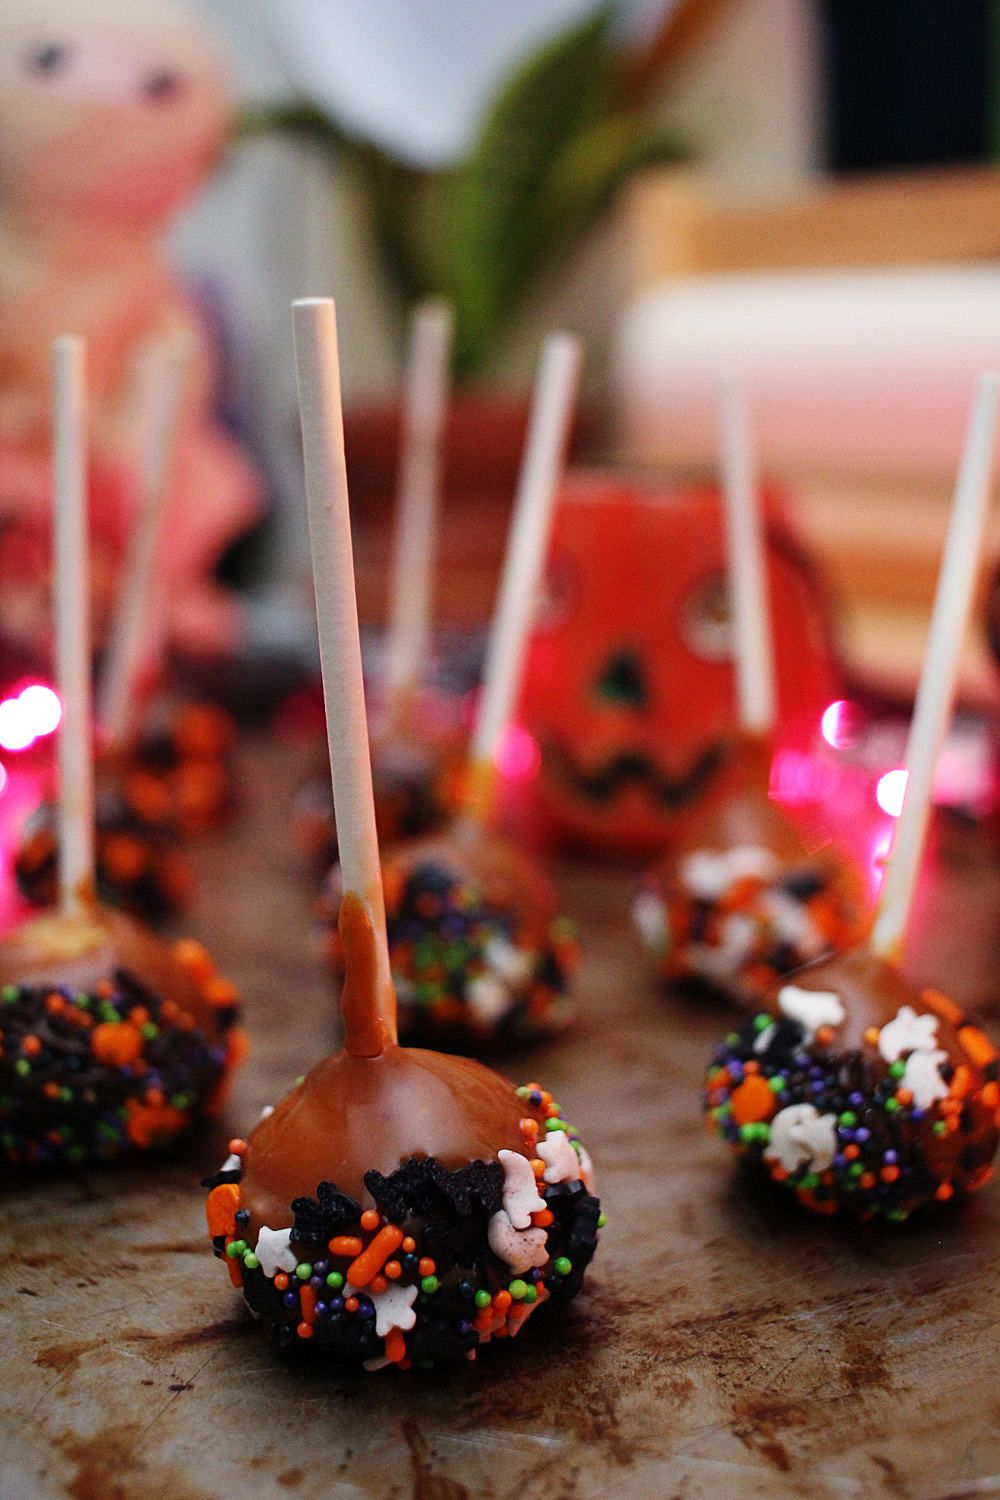 Miniature Candied Apples Recipe (With images) Candy